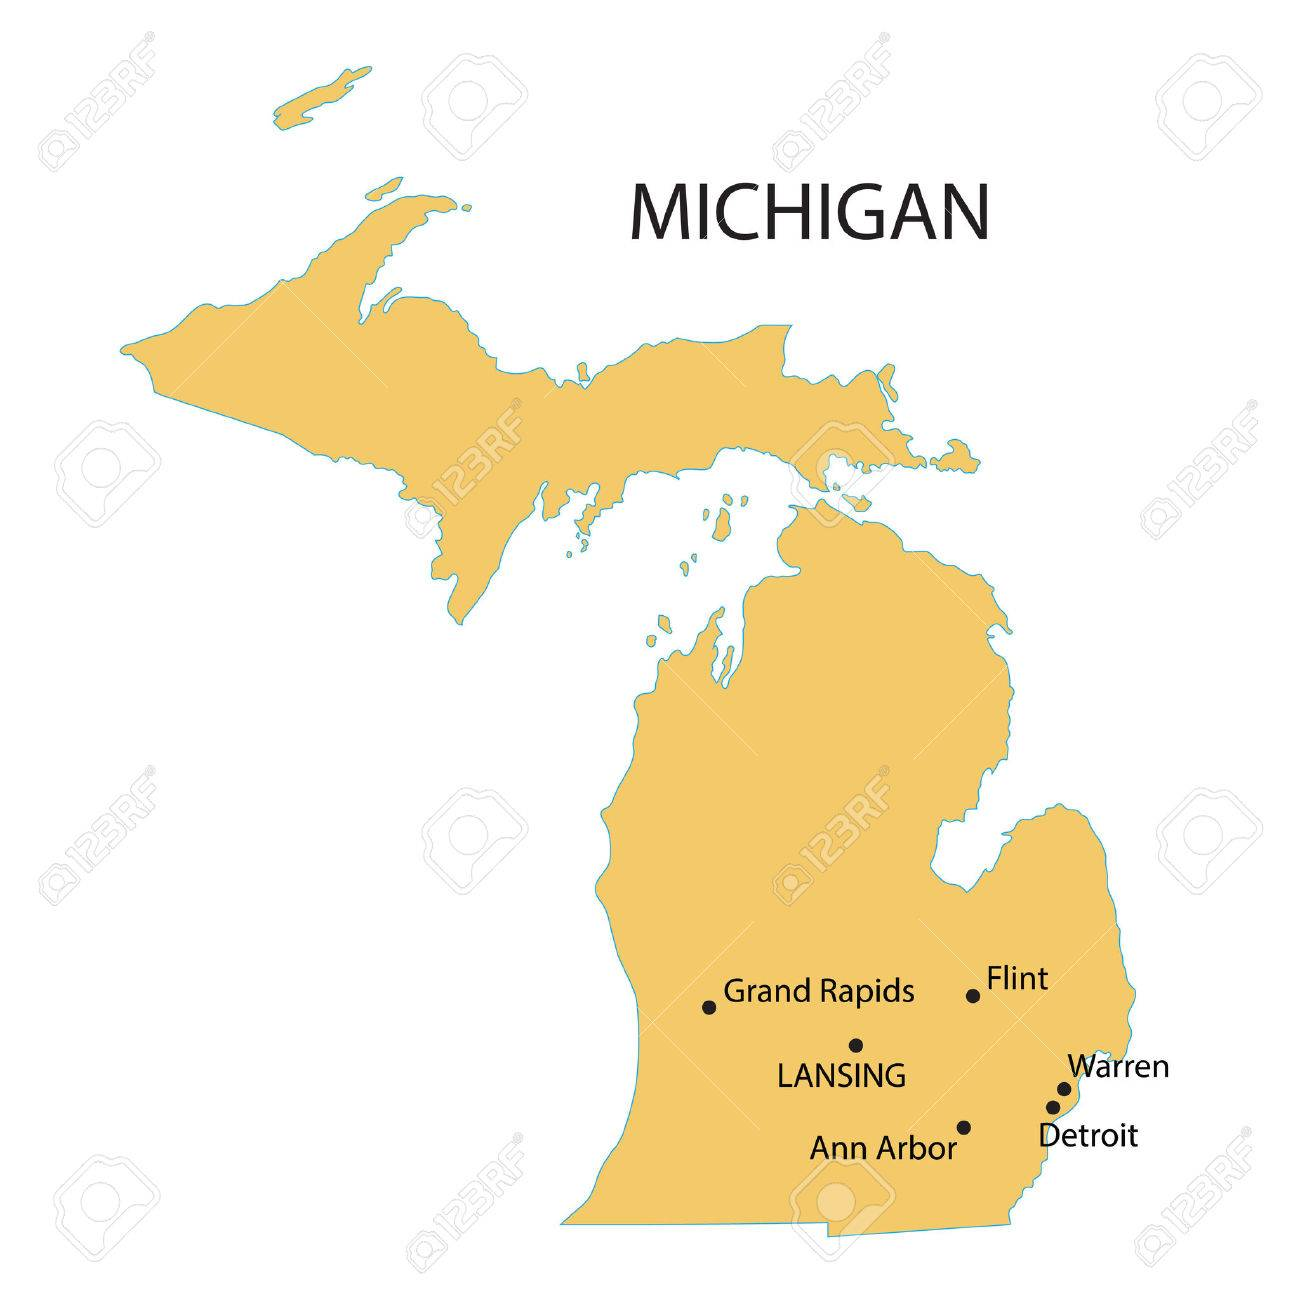 Yellow Map Of Michigan With Indication Of Largest Cities Royalty - Michigan map with cities